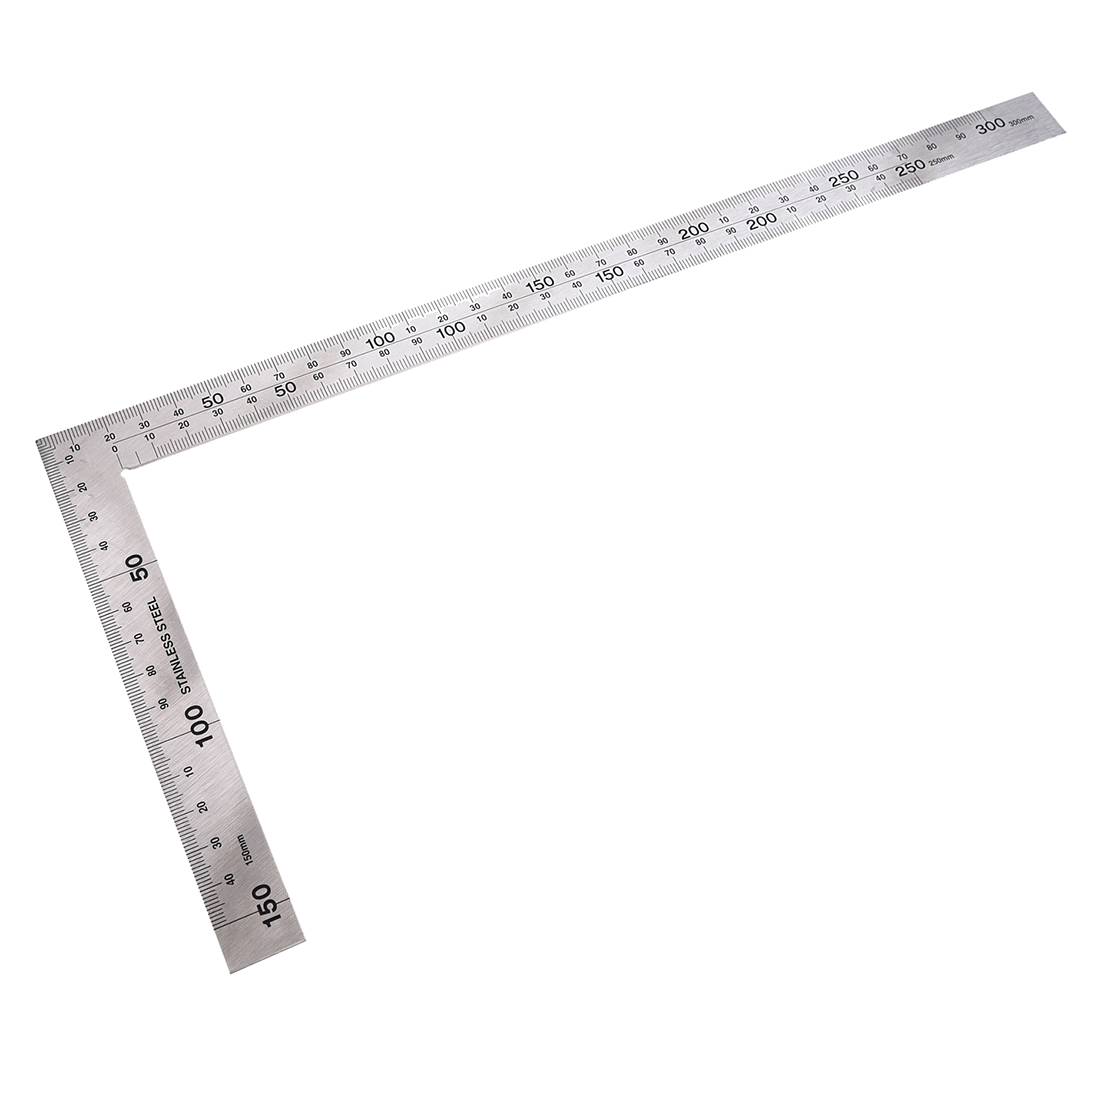 SOSW-150 X 300mm Stainless Steel Metric Try Square Ruler